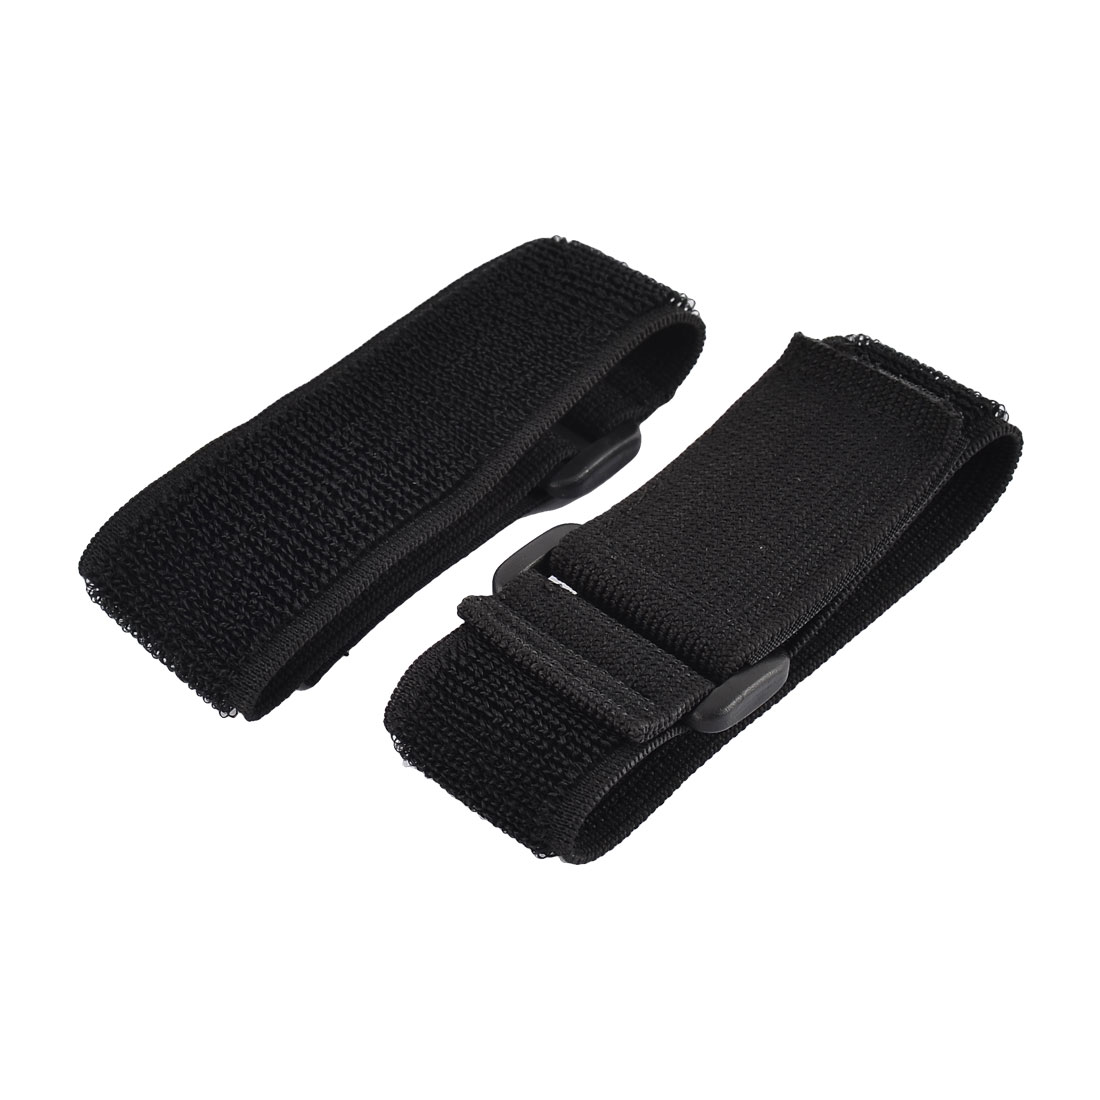 Outdoor Sports Nylon Elastic Backpack Hook Loop Tie Strap Black 3.8 x 30cm 2pcs